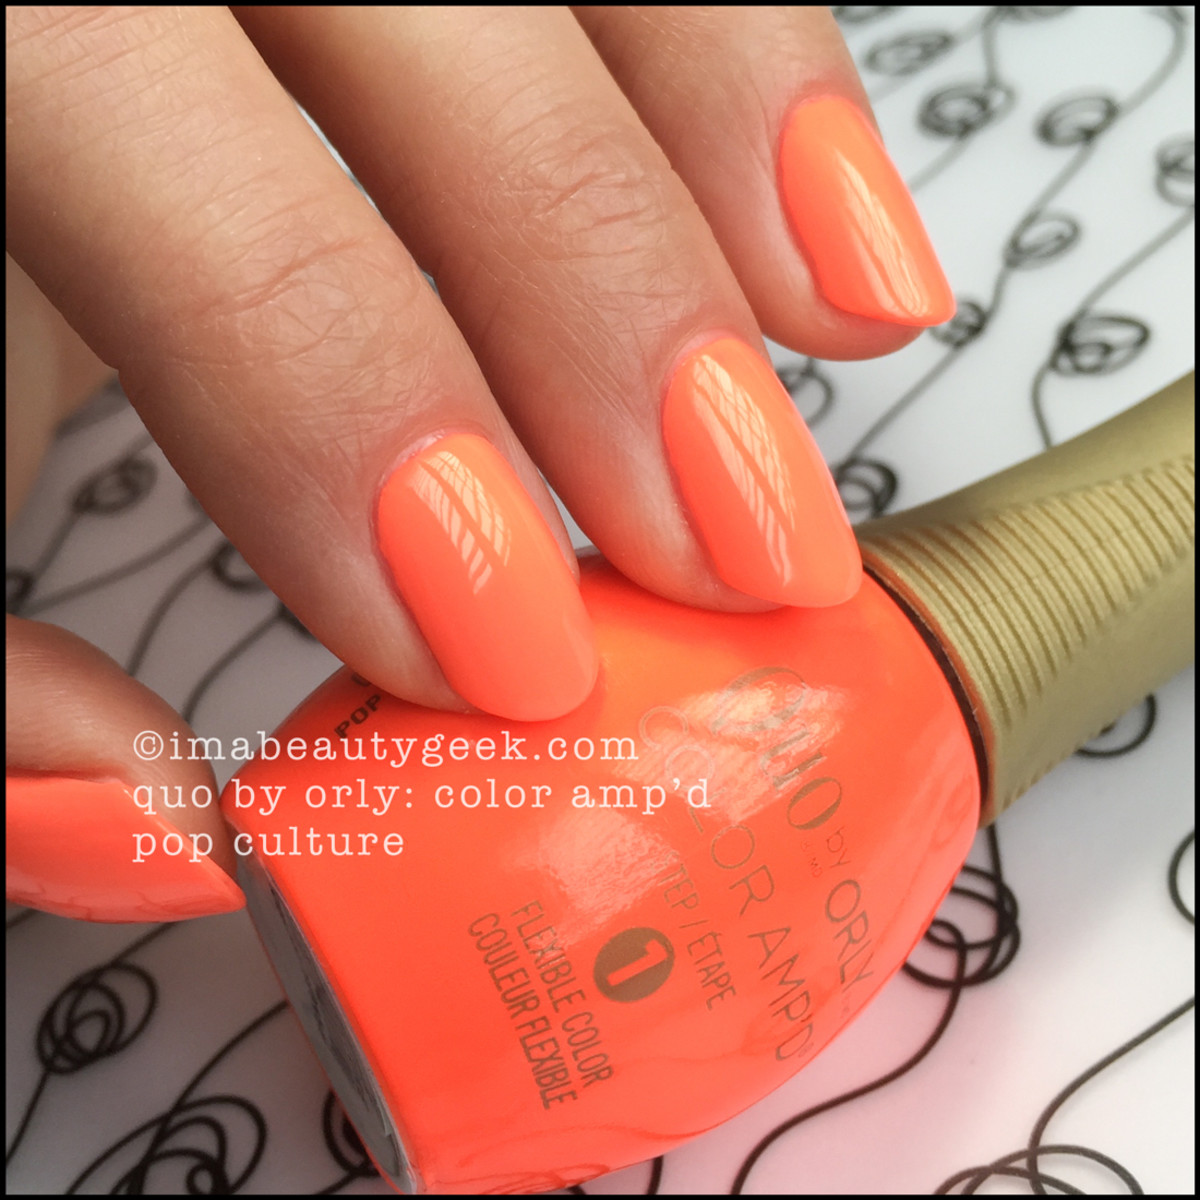 Quo by Orly Pop Culture_Quo by Orly Epix Swatches